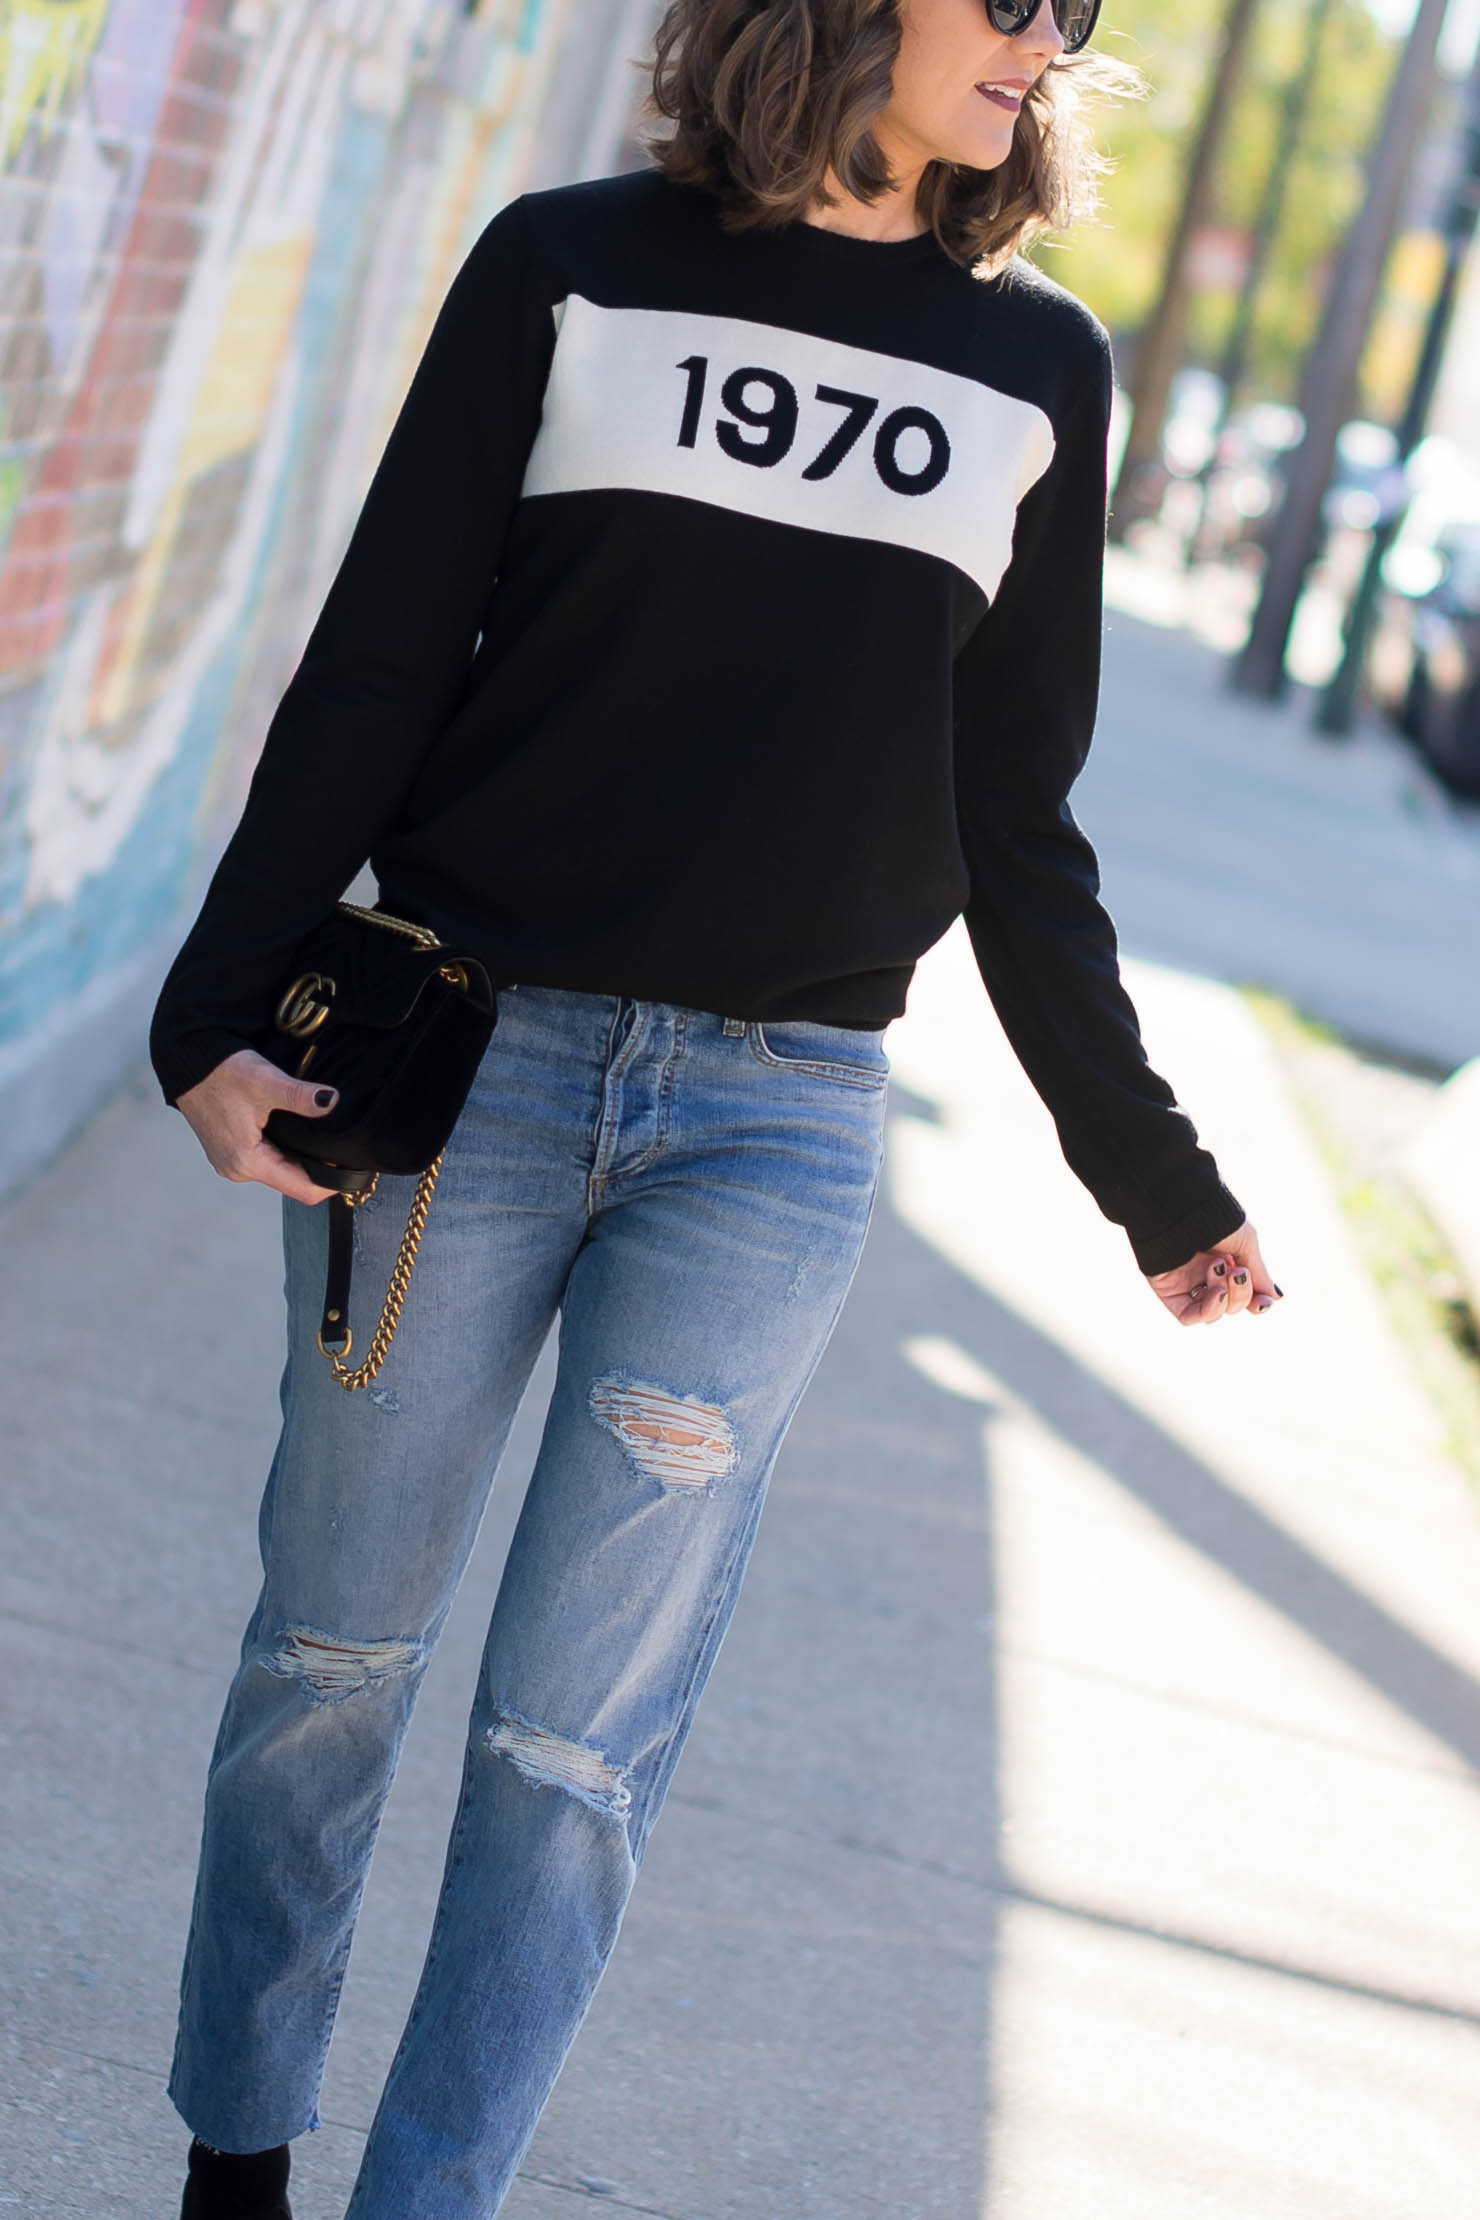 bella freud 1970 sweater my birthday, being an older fashion blogger, high low style, when to invest in clothes